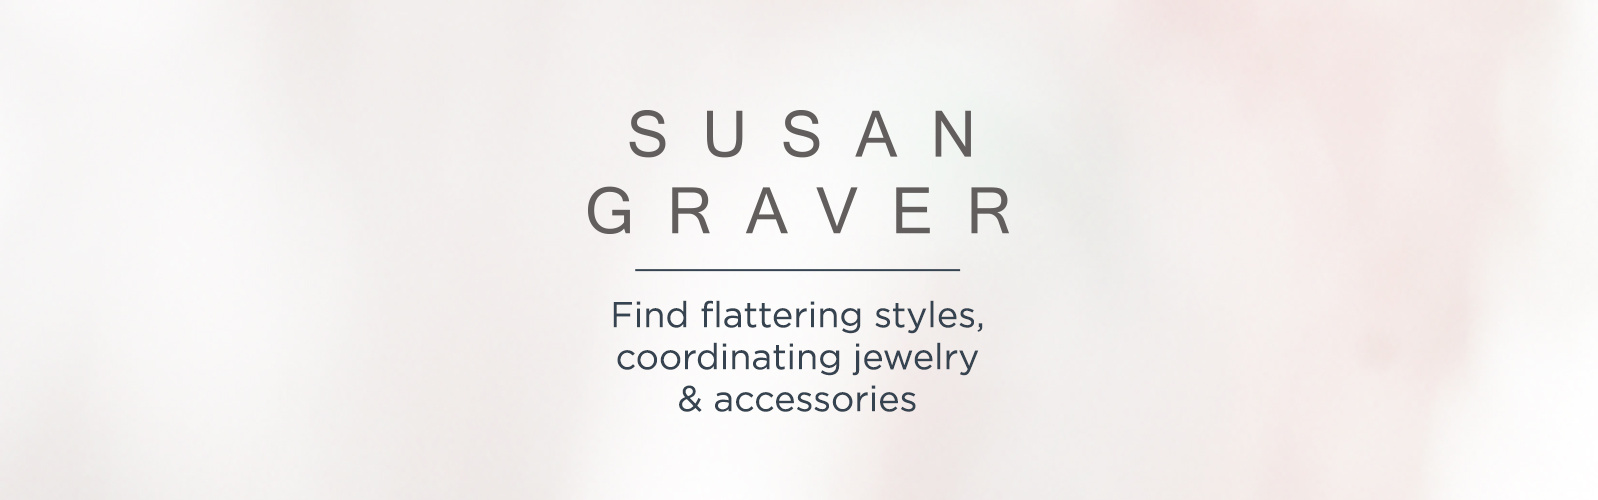 Susan Graver. Find flattering styles, coordinating jewelry & accessories